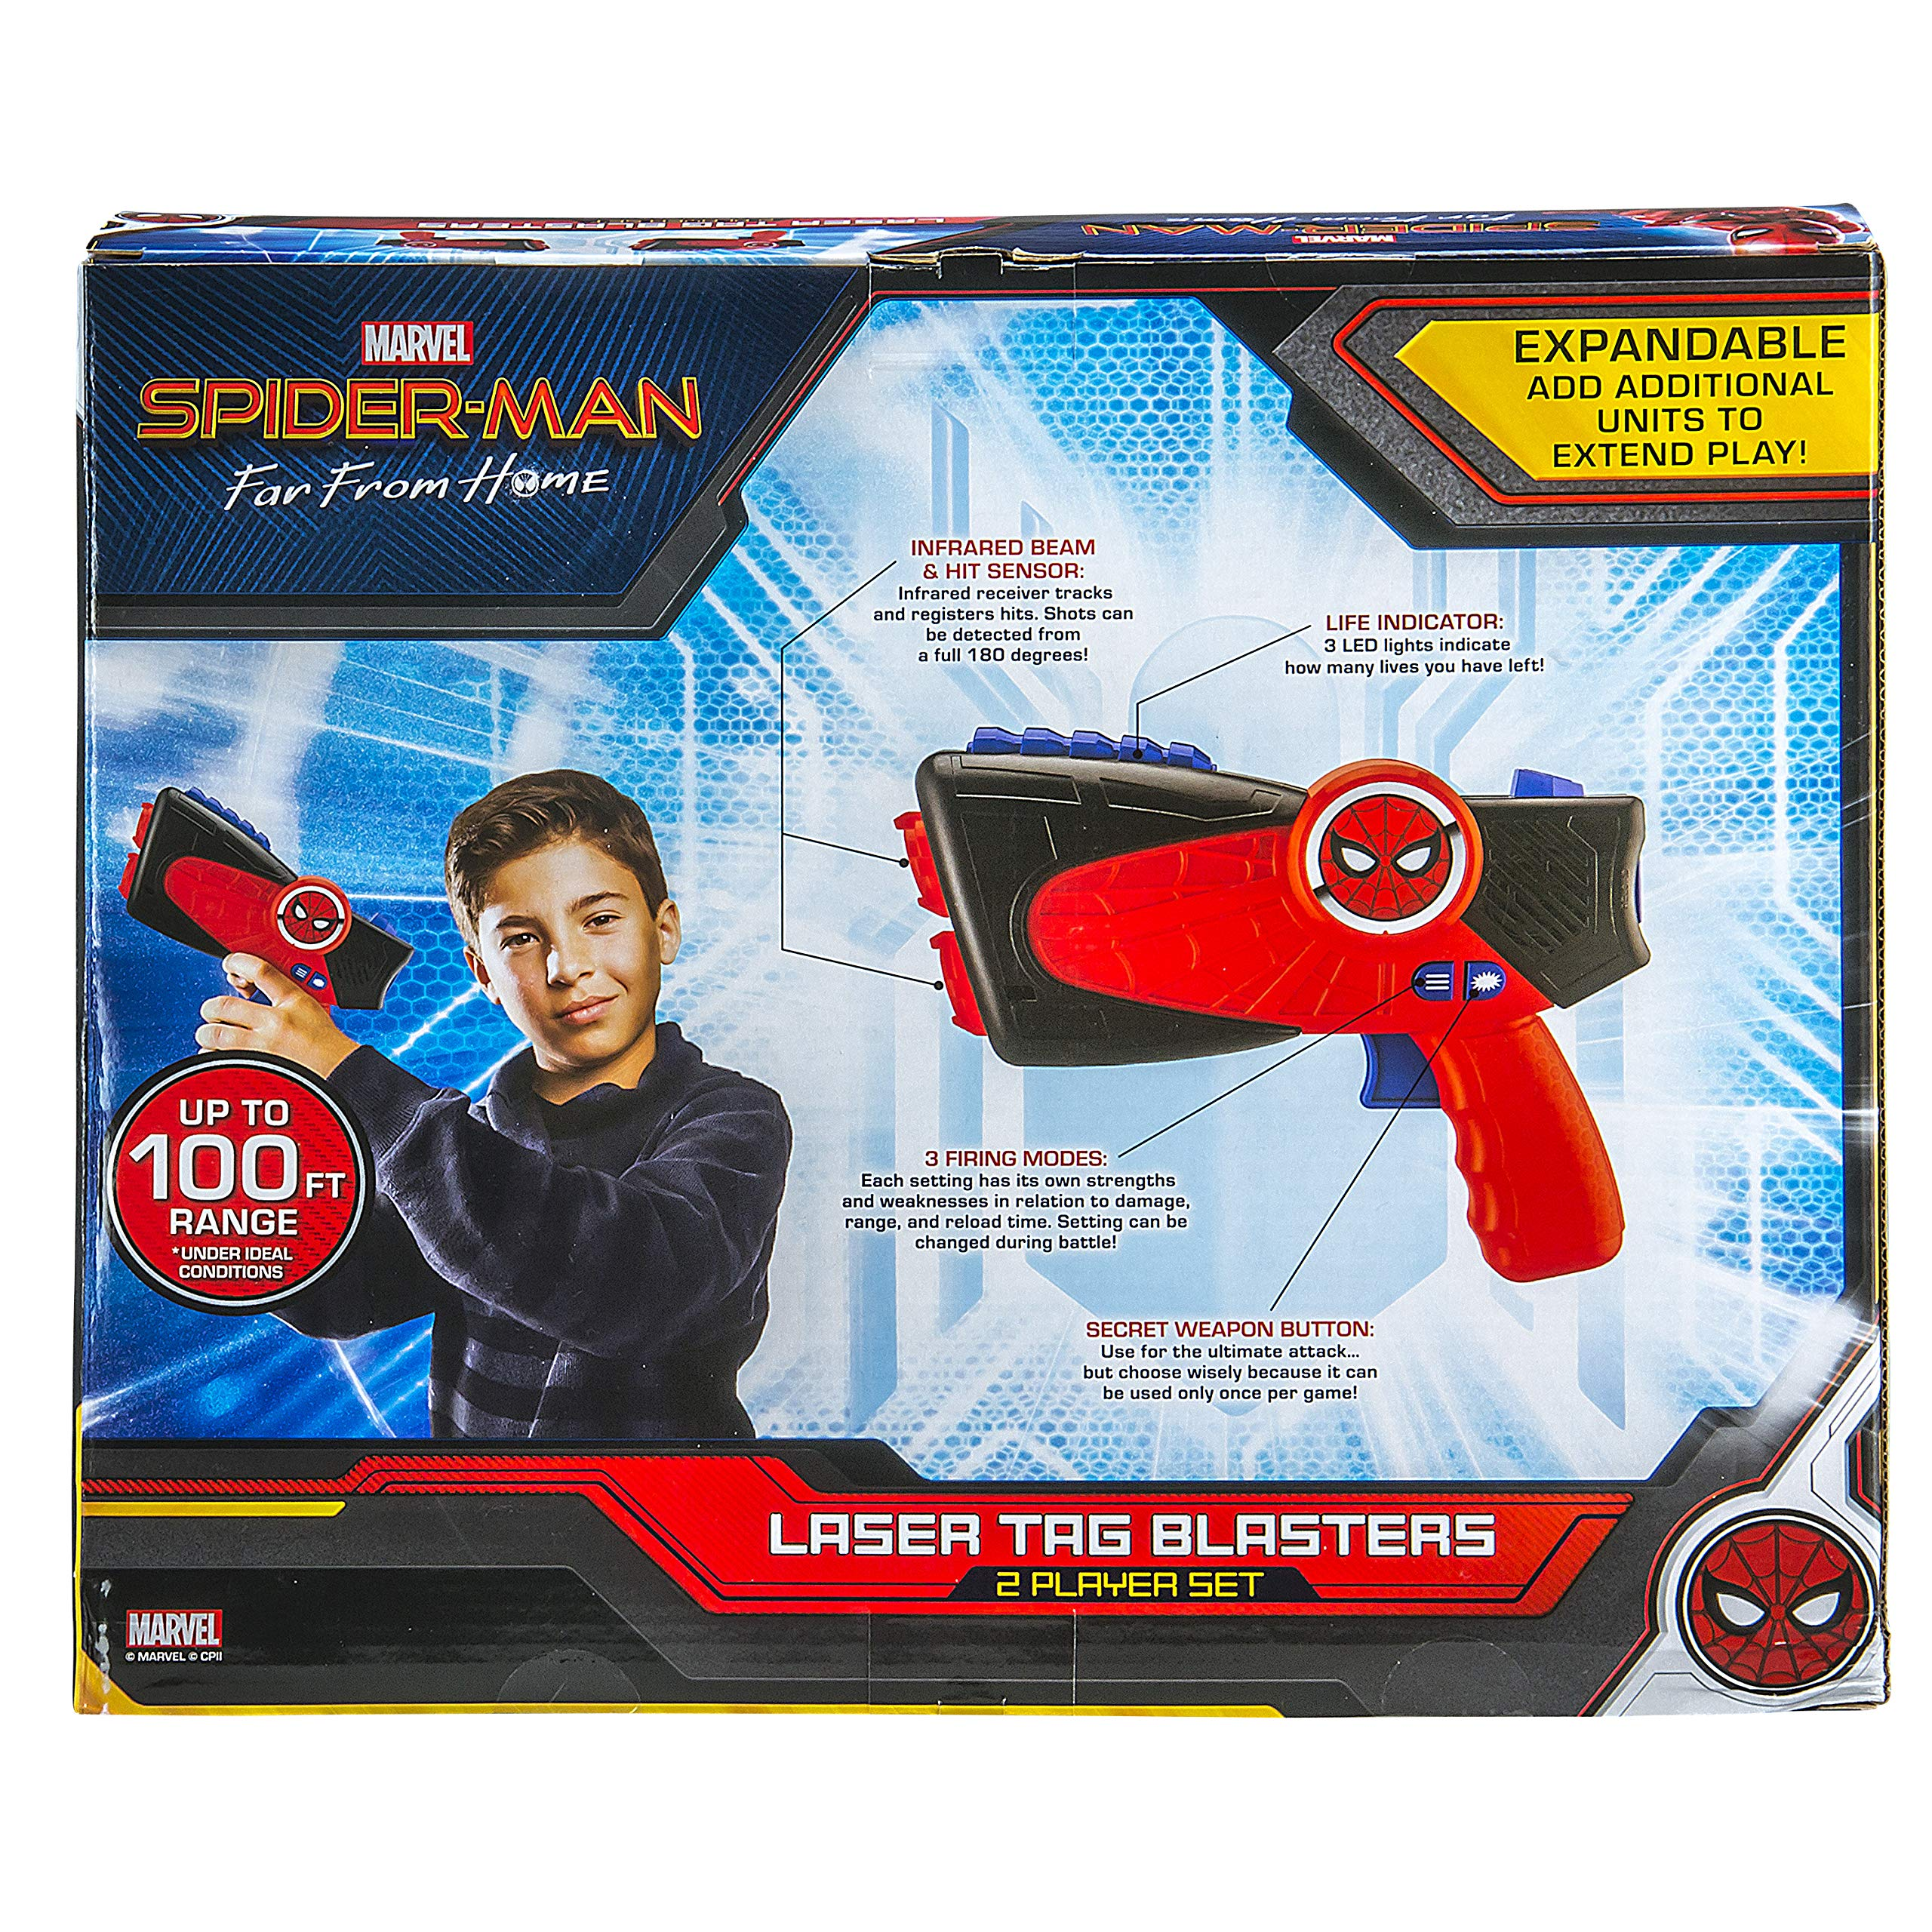 Spiderman Far from Home Laser-Tag for Kids Infared Lazer-Tag Blasters Lights Up & Vibrates When Hit by eKids (Image #6)